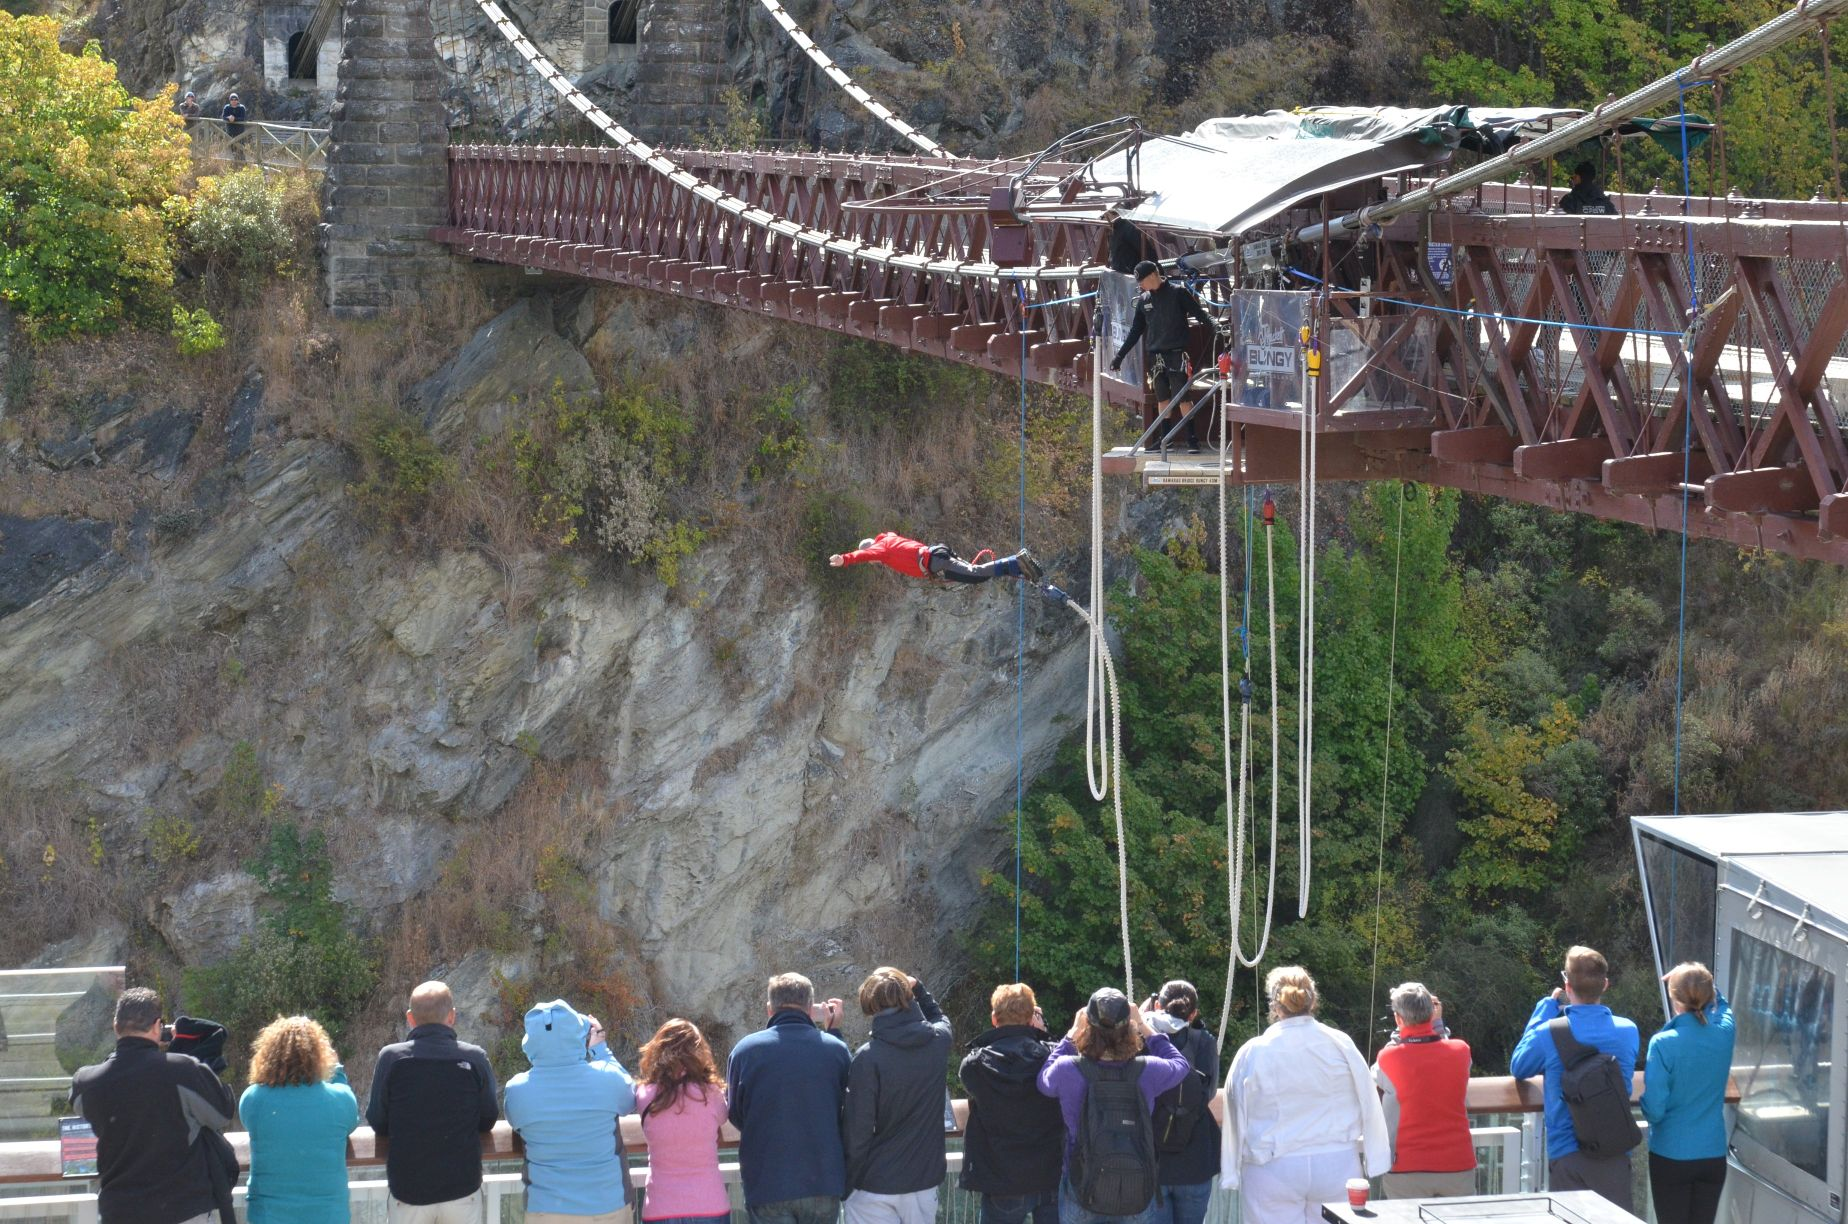 bungy jumping – the craziest in new zealand  hinh 1